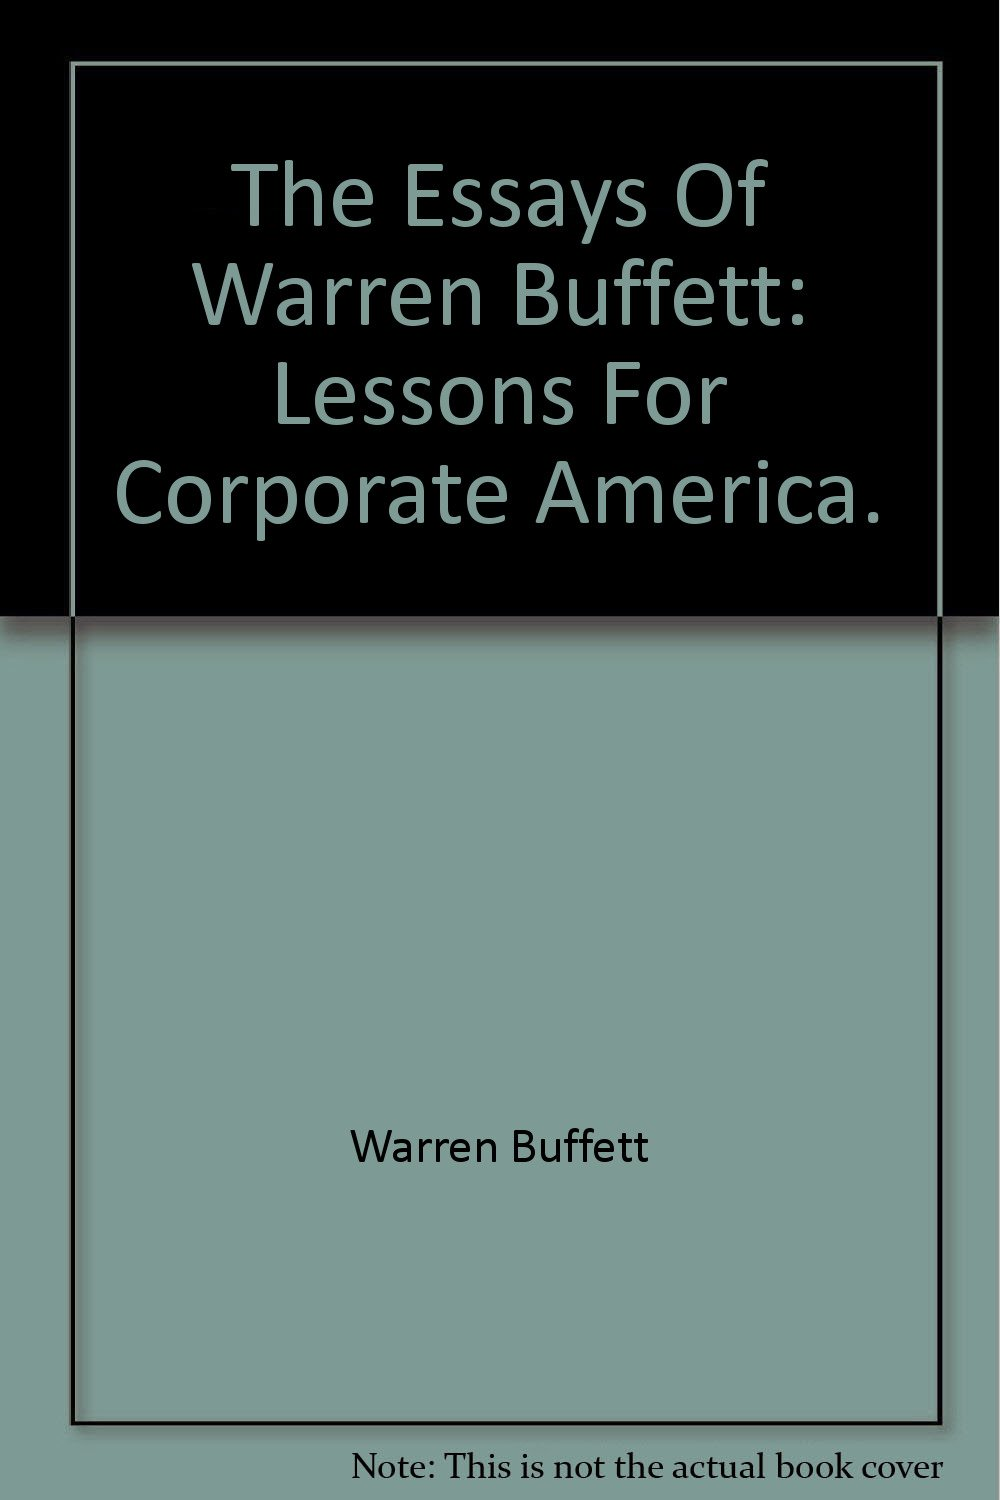 015 The Essays Of Warren Buffett 61wo12biiixl Essay Stirring Pages Audiobook Download Summary Full